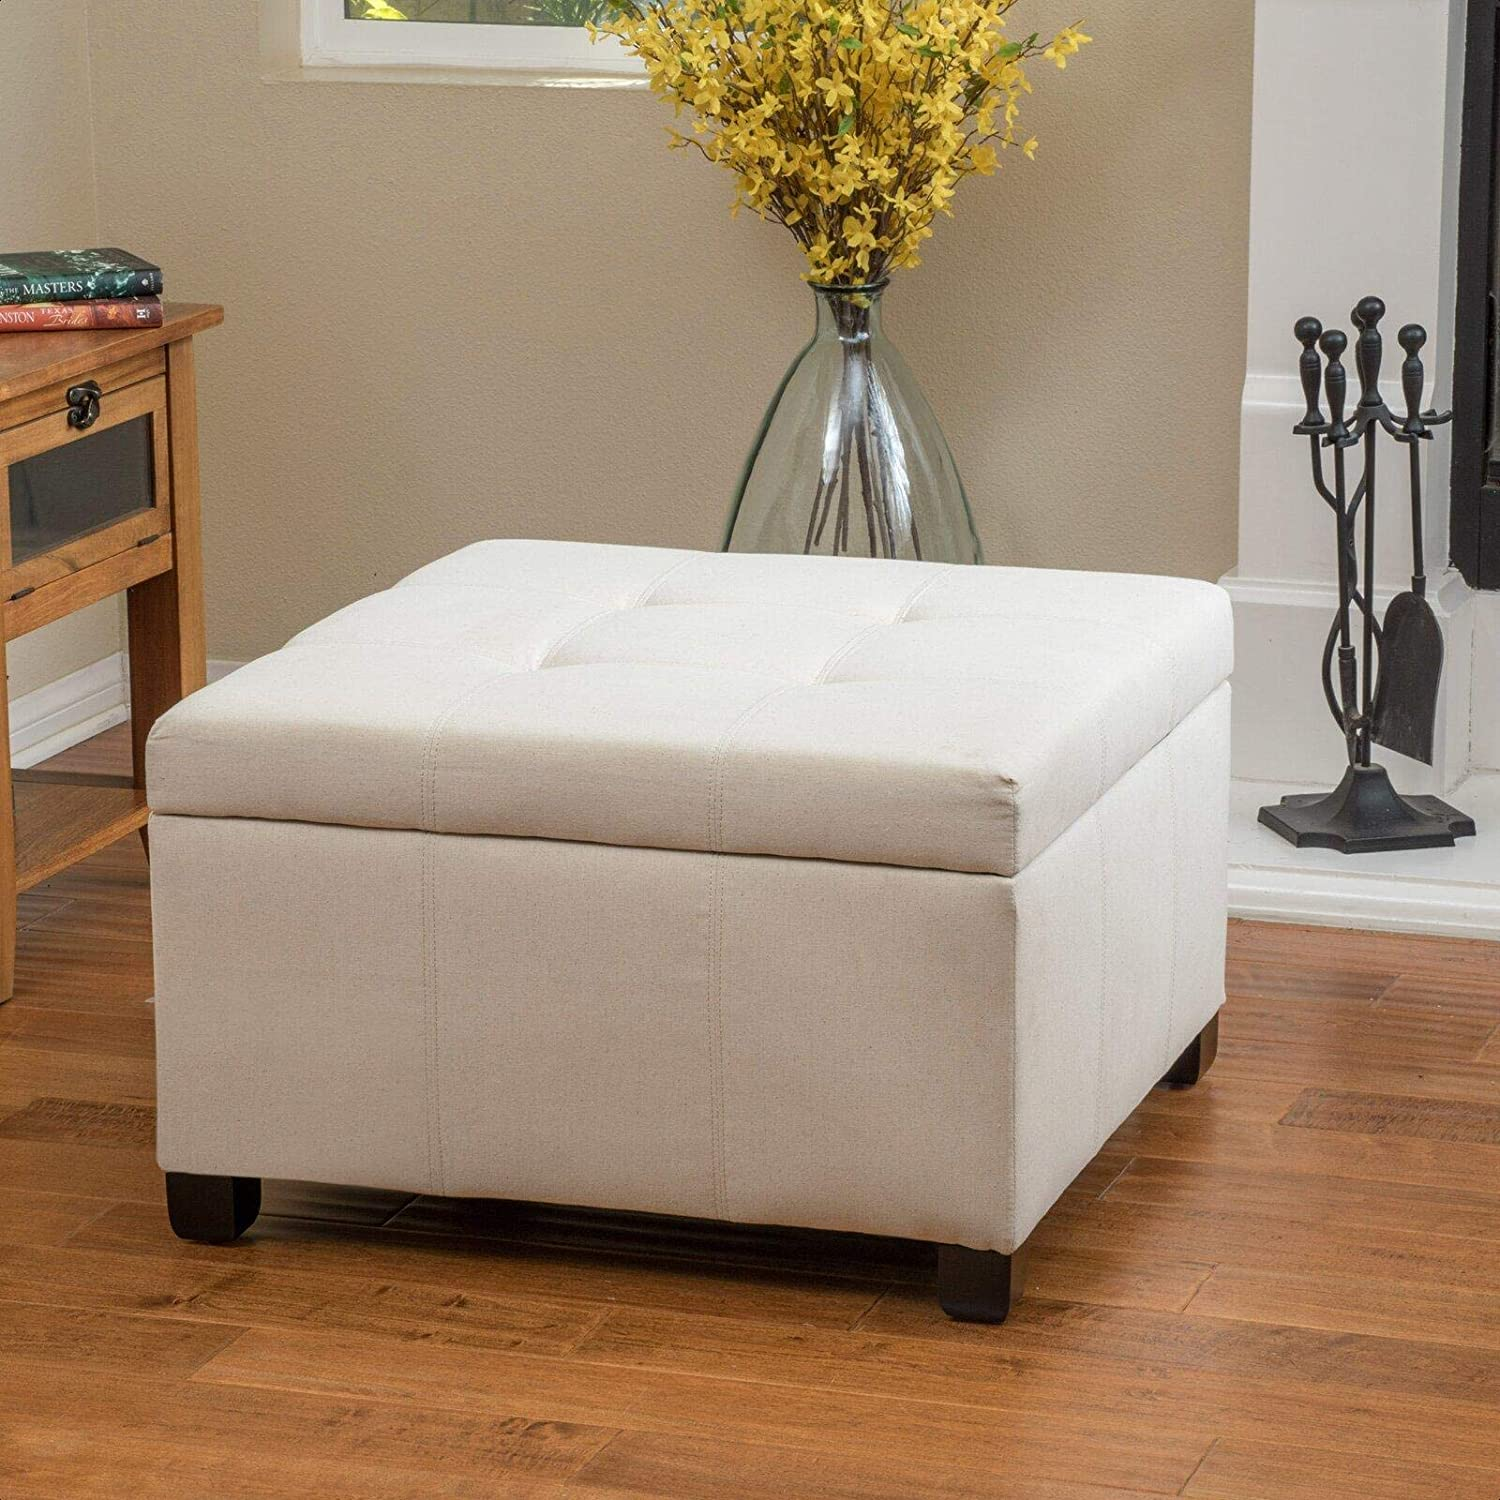 Palaney Isabeth Hardee Storage New Shipping Free Shipping Outlet SALE Tufted Ottoman